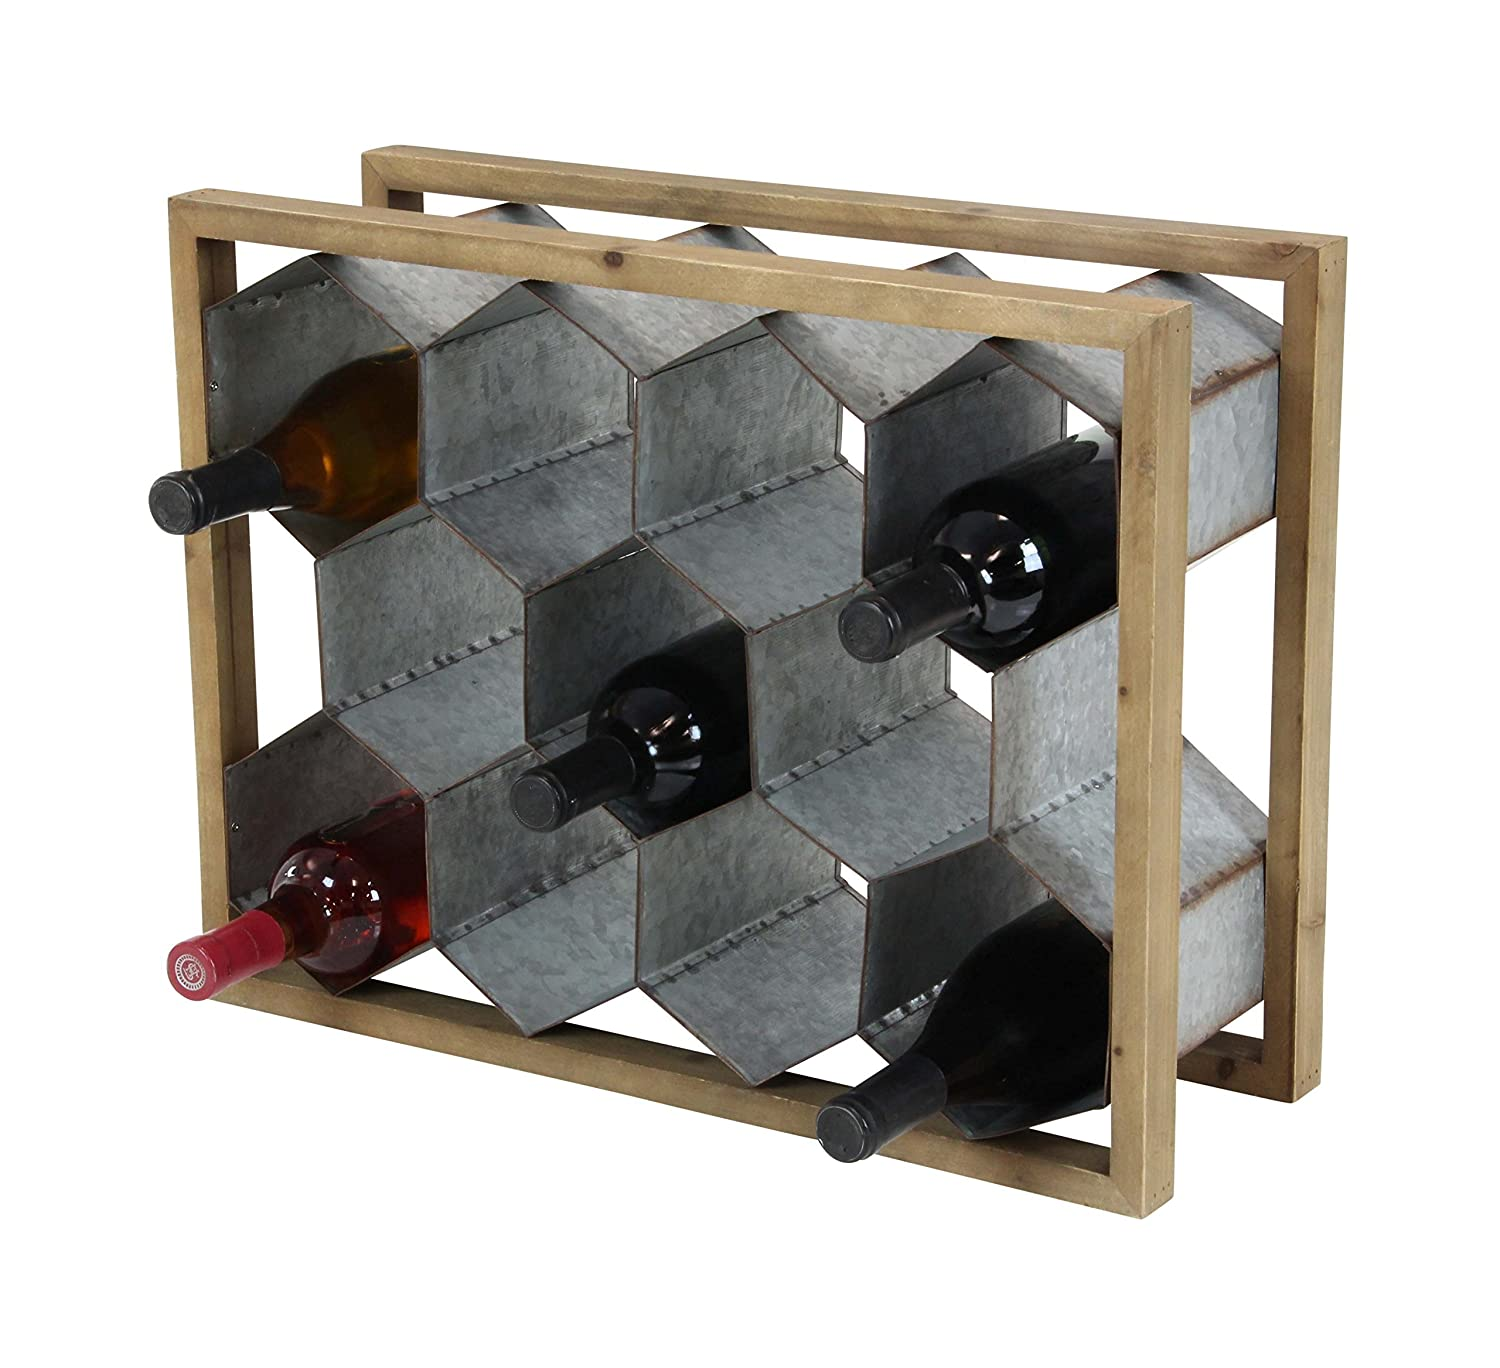 Deco 79 84311 Arrow-Inspired Wood and Metal Wine Holder, 6